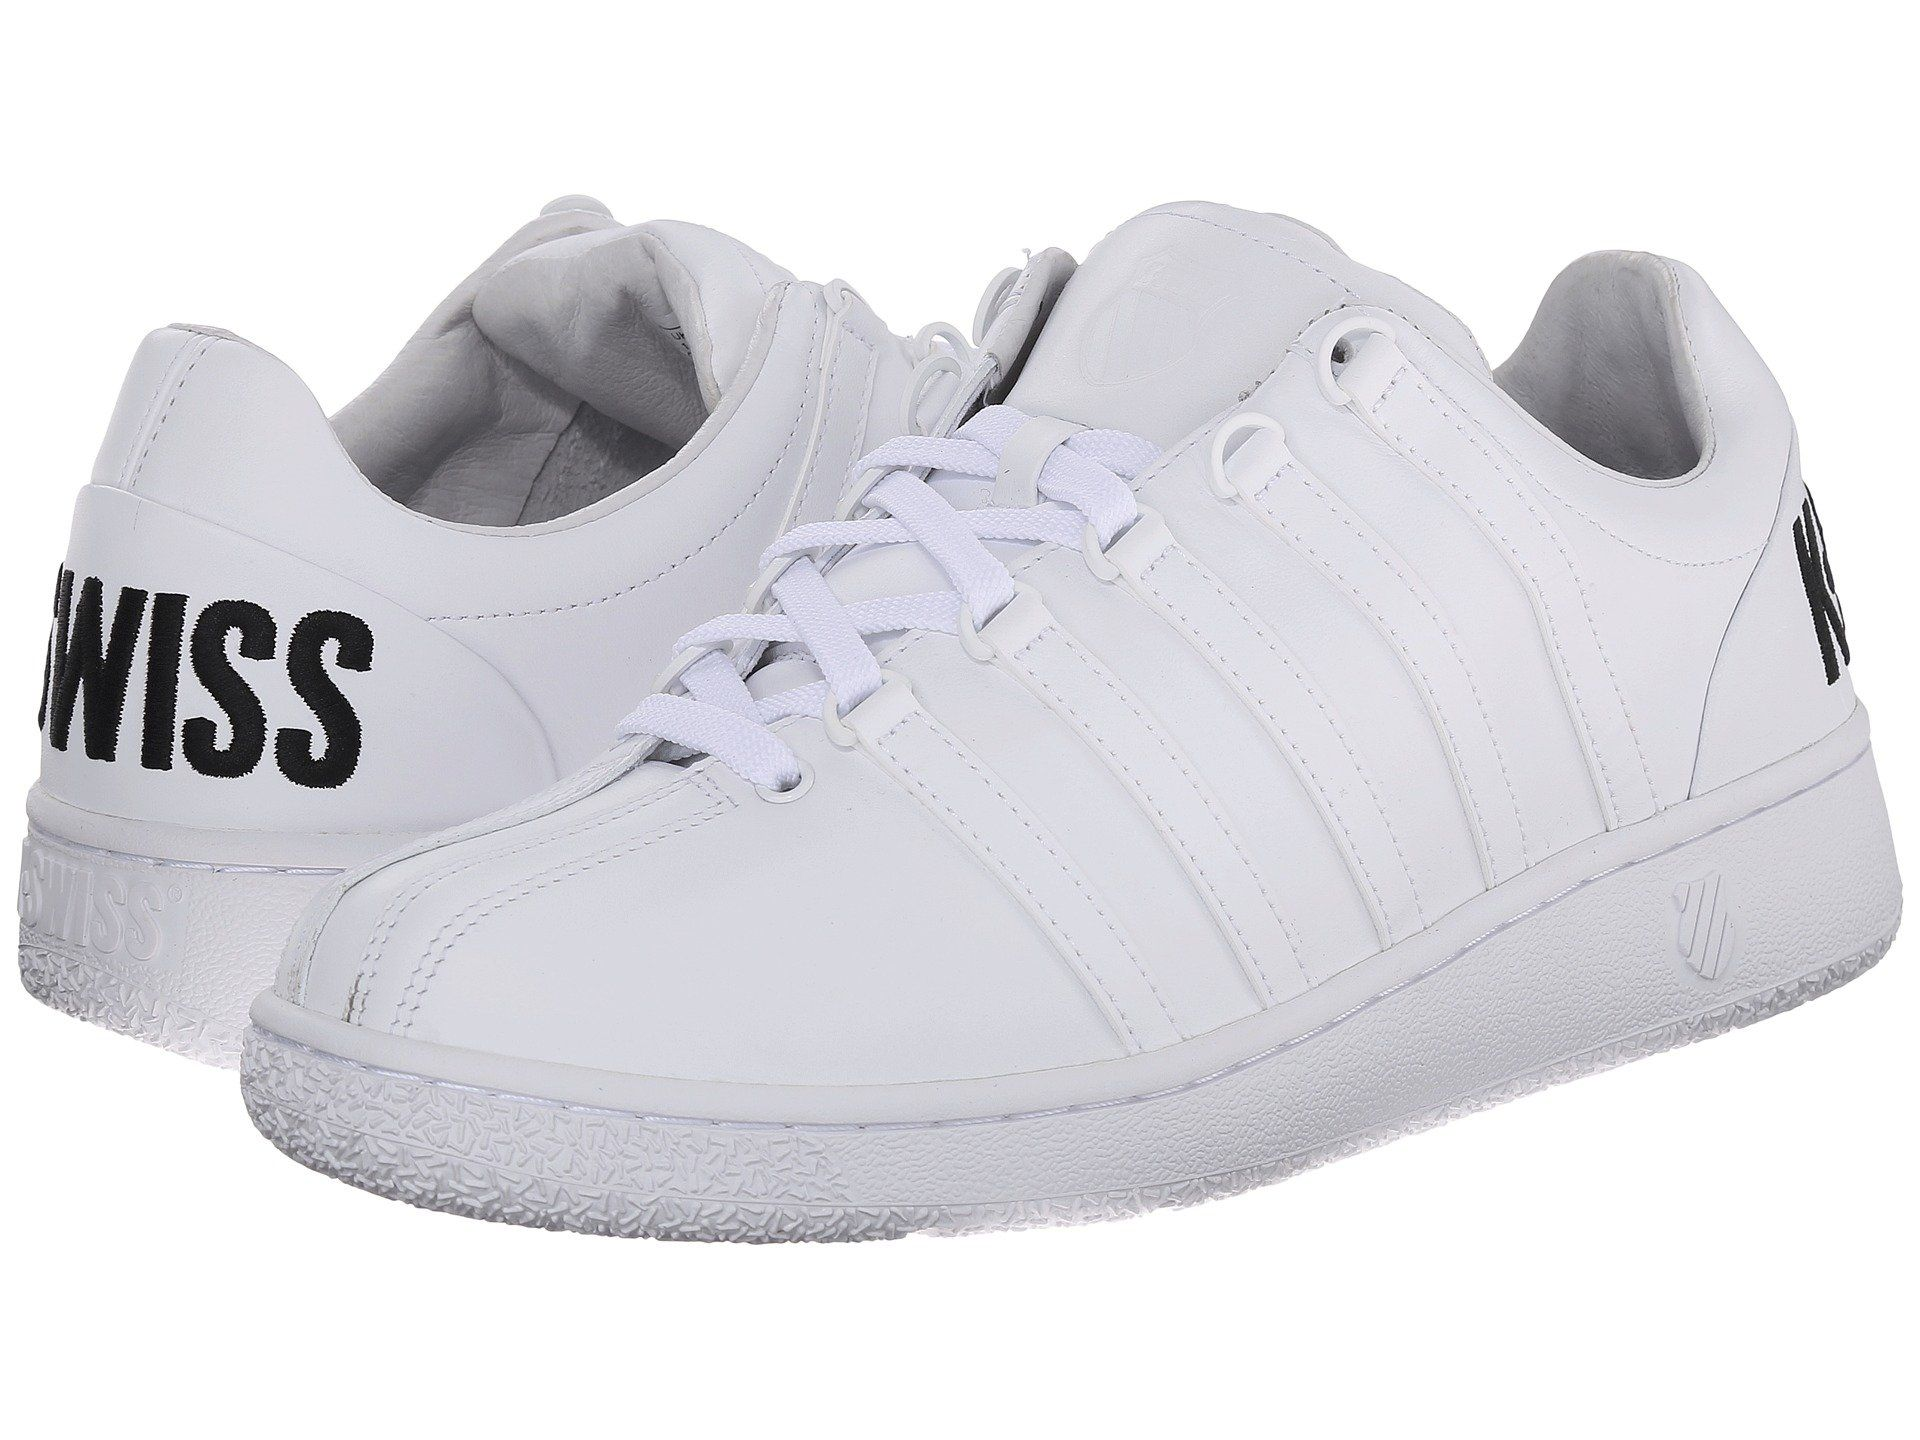 k swiss shoes lazada vietnam flag